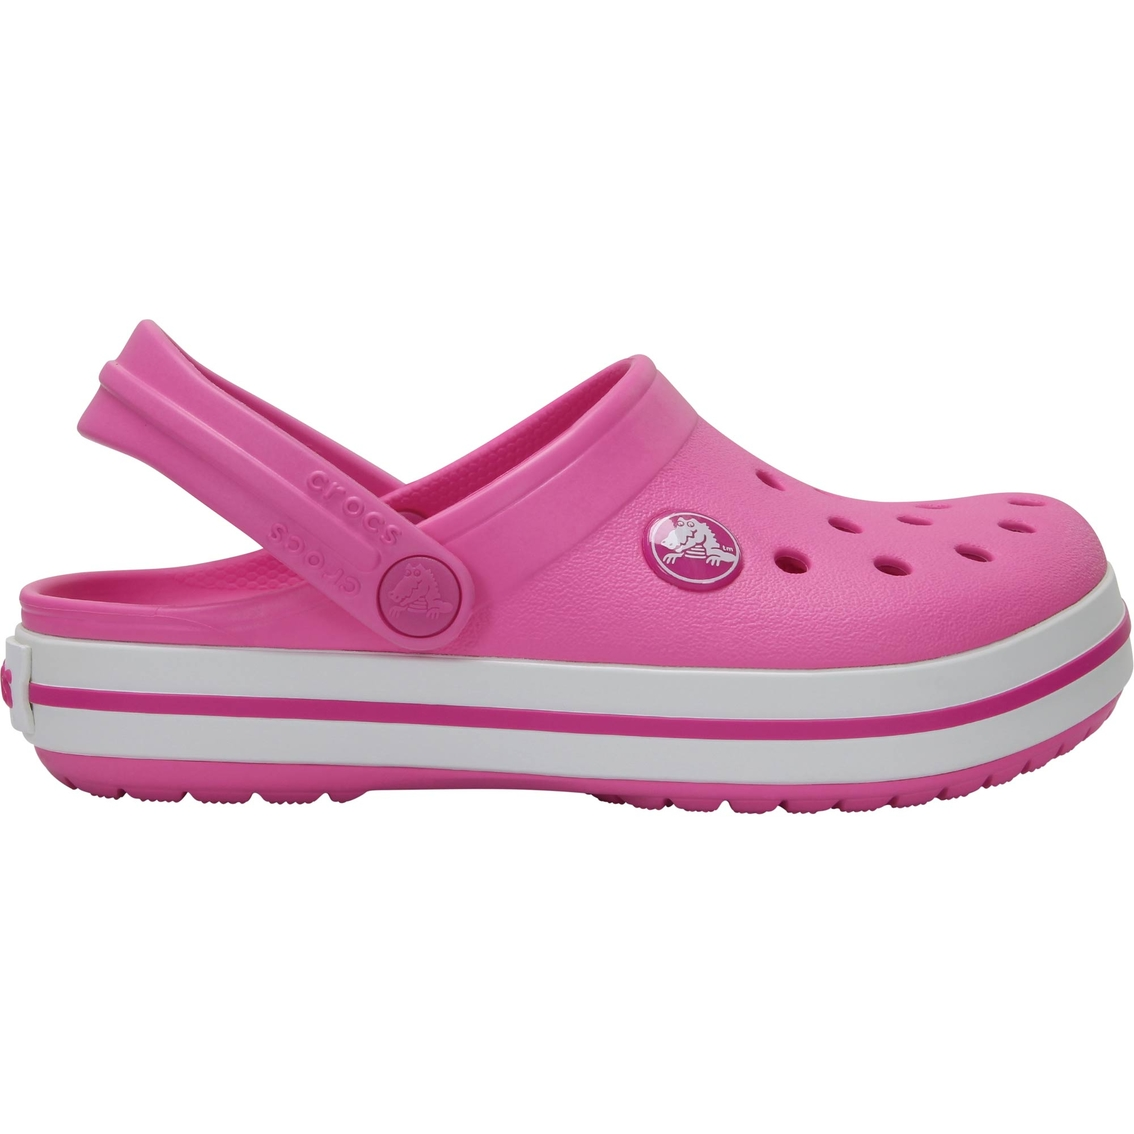 d2c4cf9afd9ef2 Crocs Girls Crocband Clogs